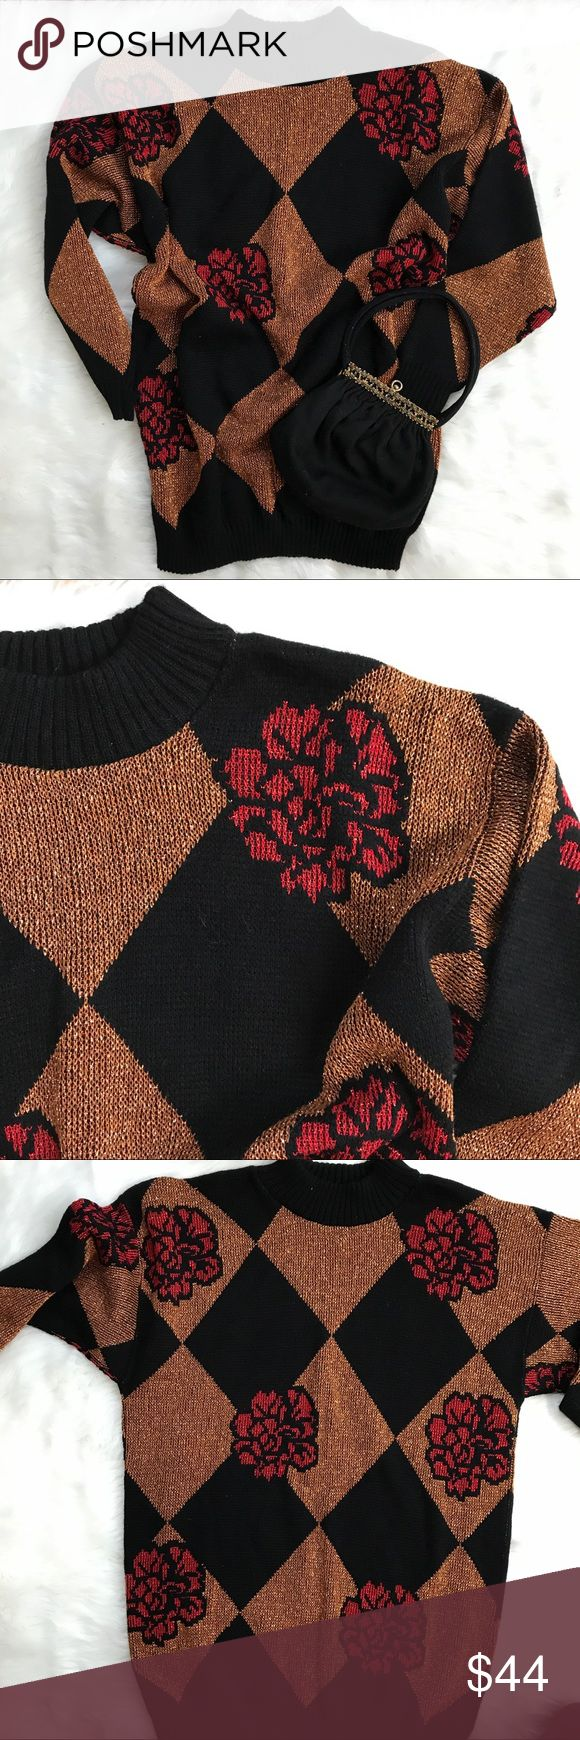 "Vintage 90's Black Bronze Glittery Sweater This oversized sweater looks great with black leggings. Dana Scott brand. Roses add the perfect contrast. Long , oversized style. No shoulder pads. Great condition. Unstretched measurements 42"" bust. 31"" around bottom. 30"" long. Vintage Sweaters"